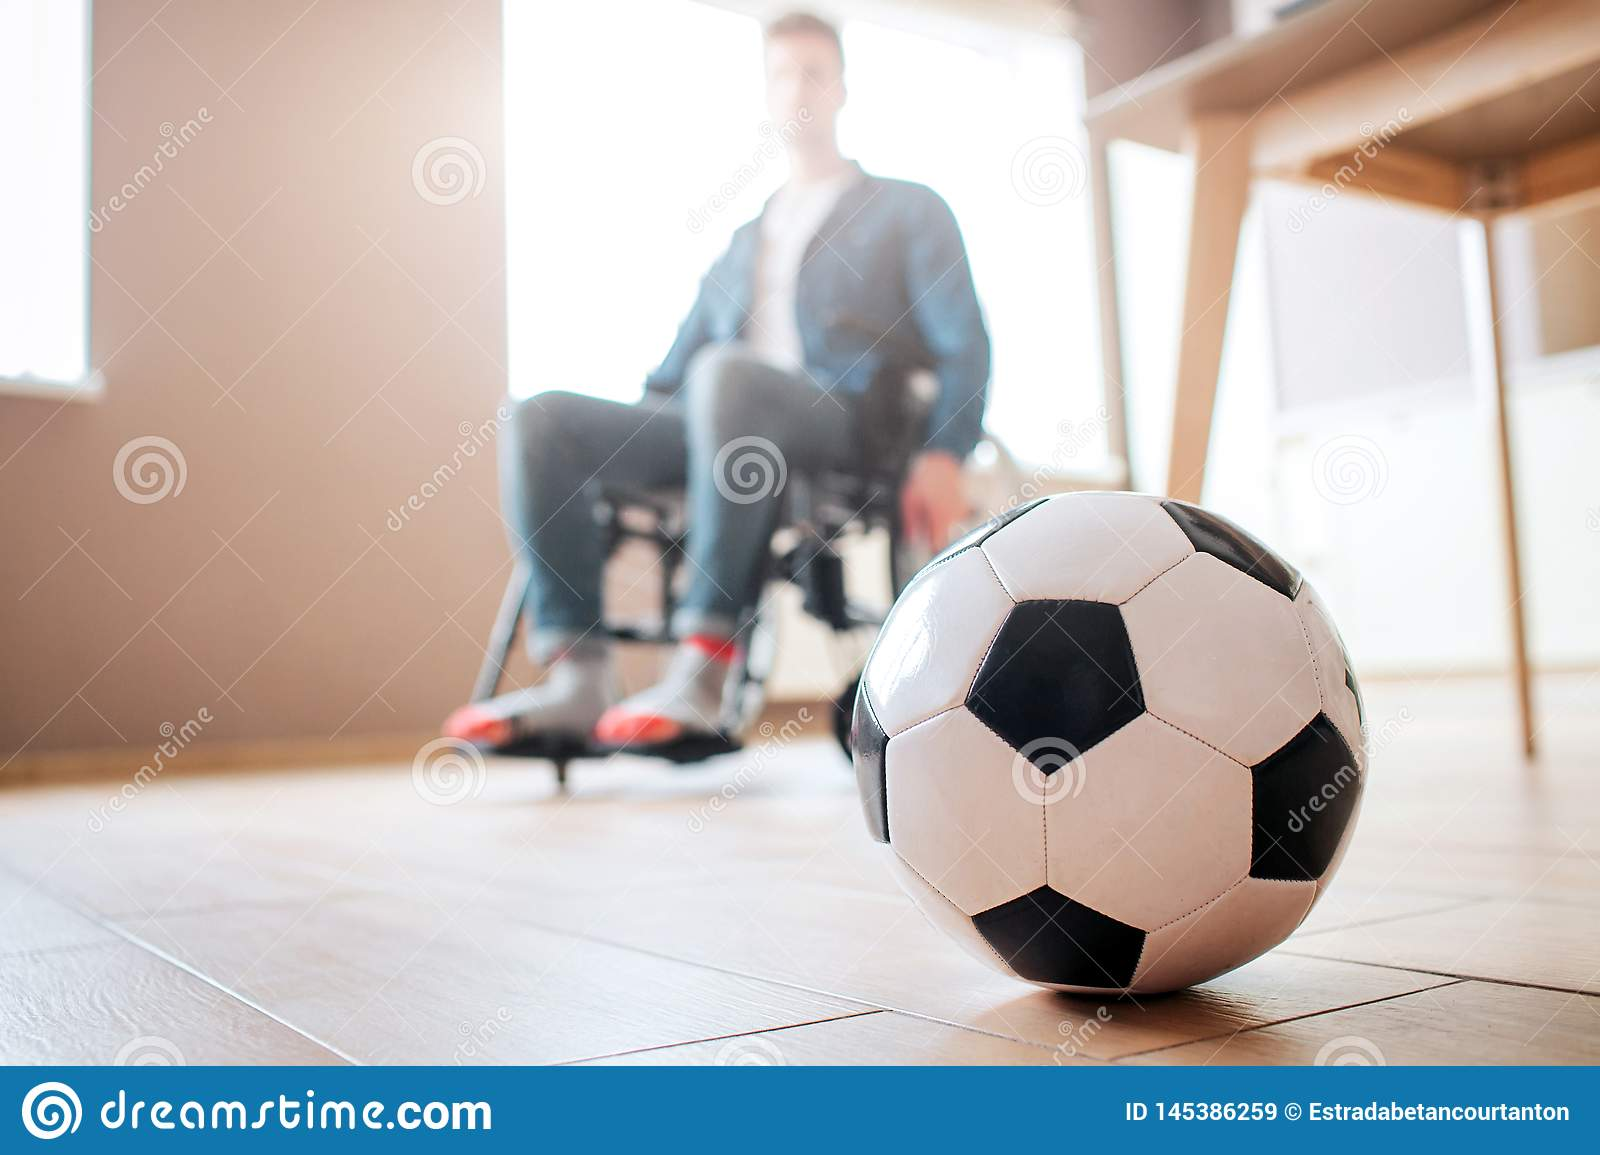 Young man with disability sitting on wheelchair and look down at ball for game. Ex sportsman. Upset and unhappy. Trauma